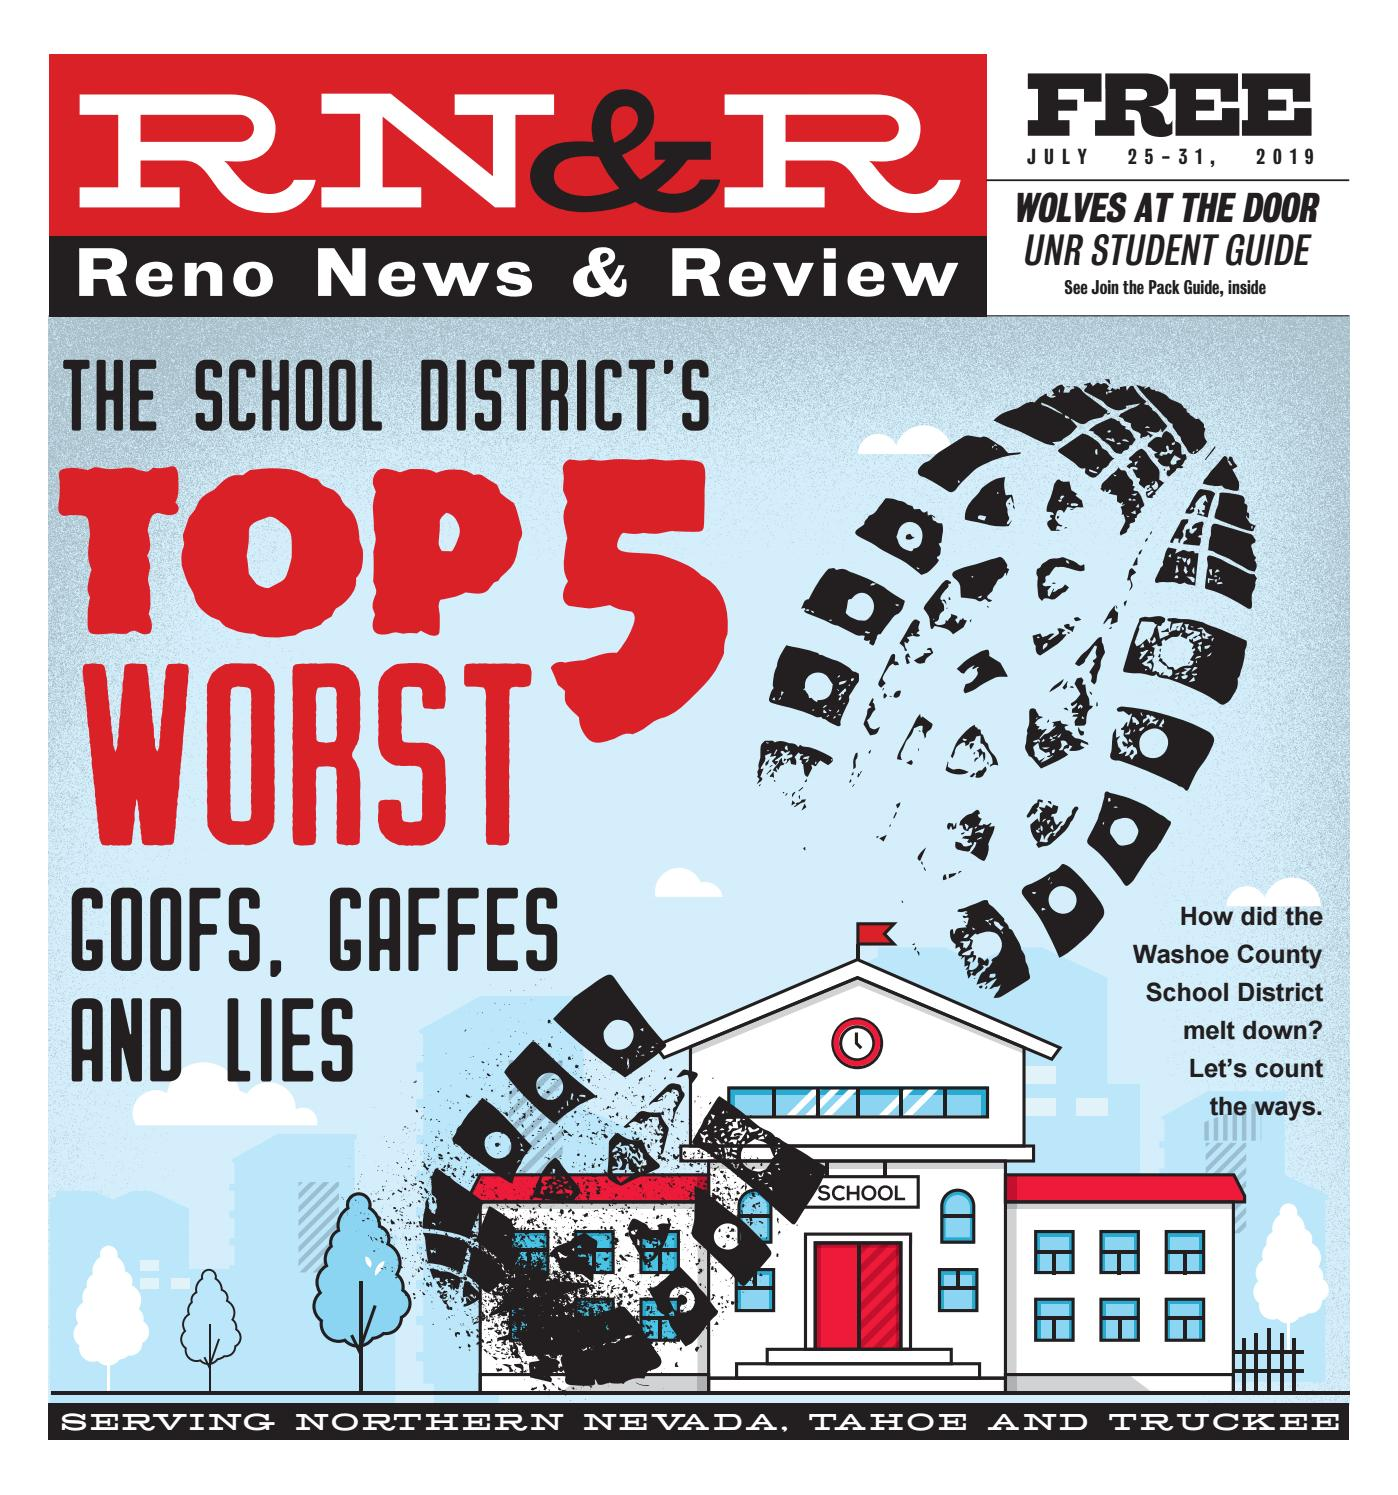 r-2019-07-25 by News & Review - issuu